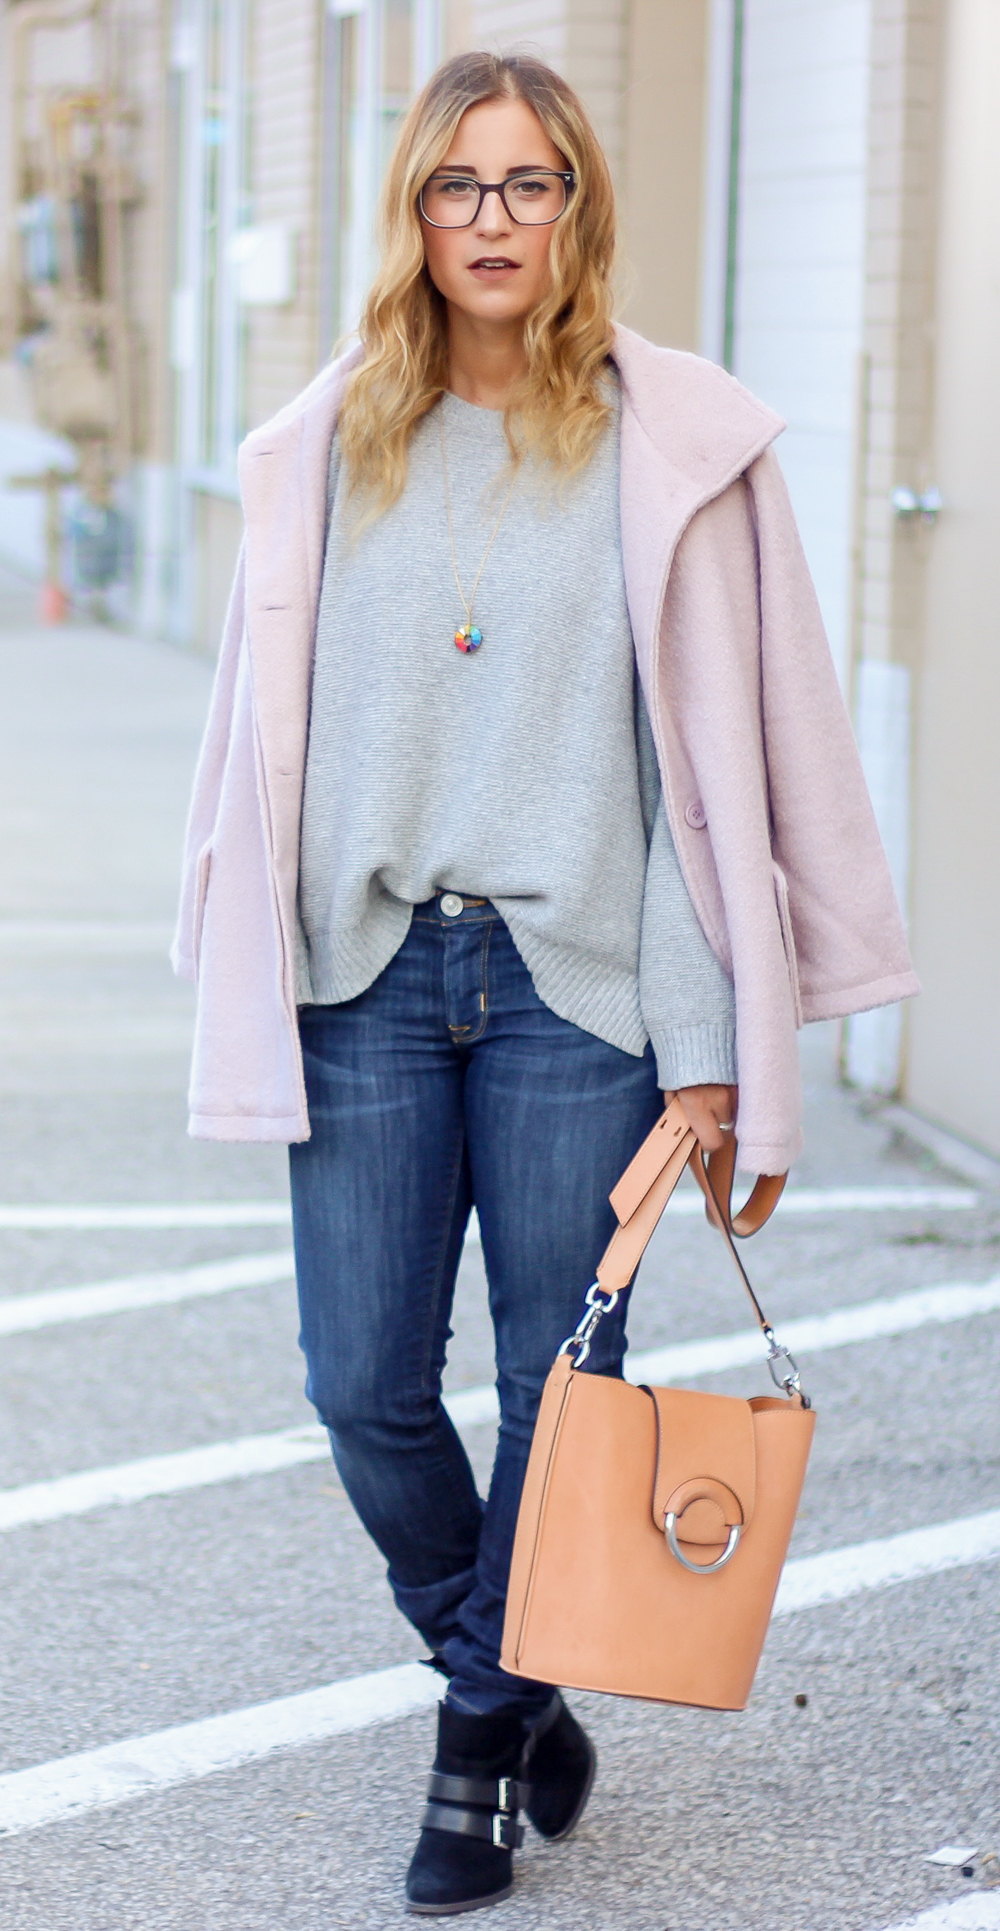 Fall outfit inspiration - Cupcakes and cashmere pink Shayla jacket